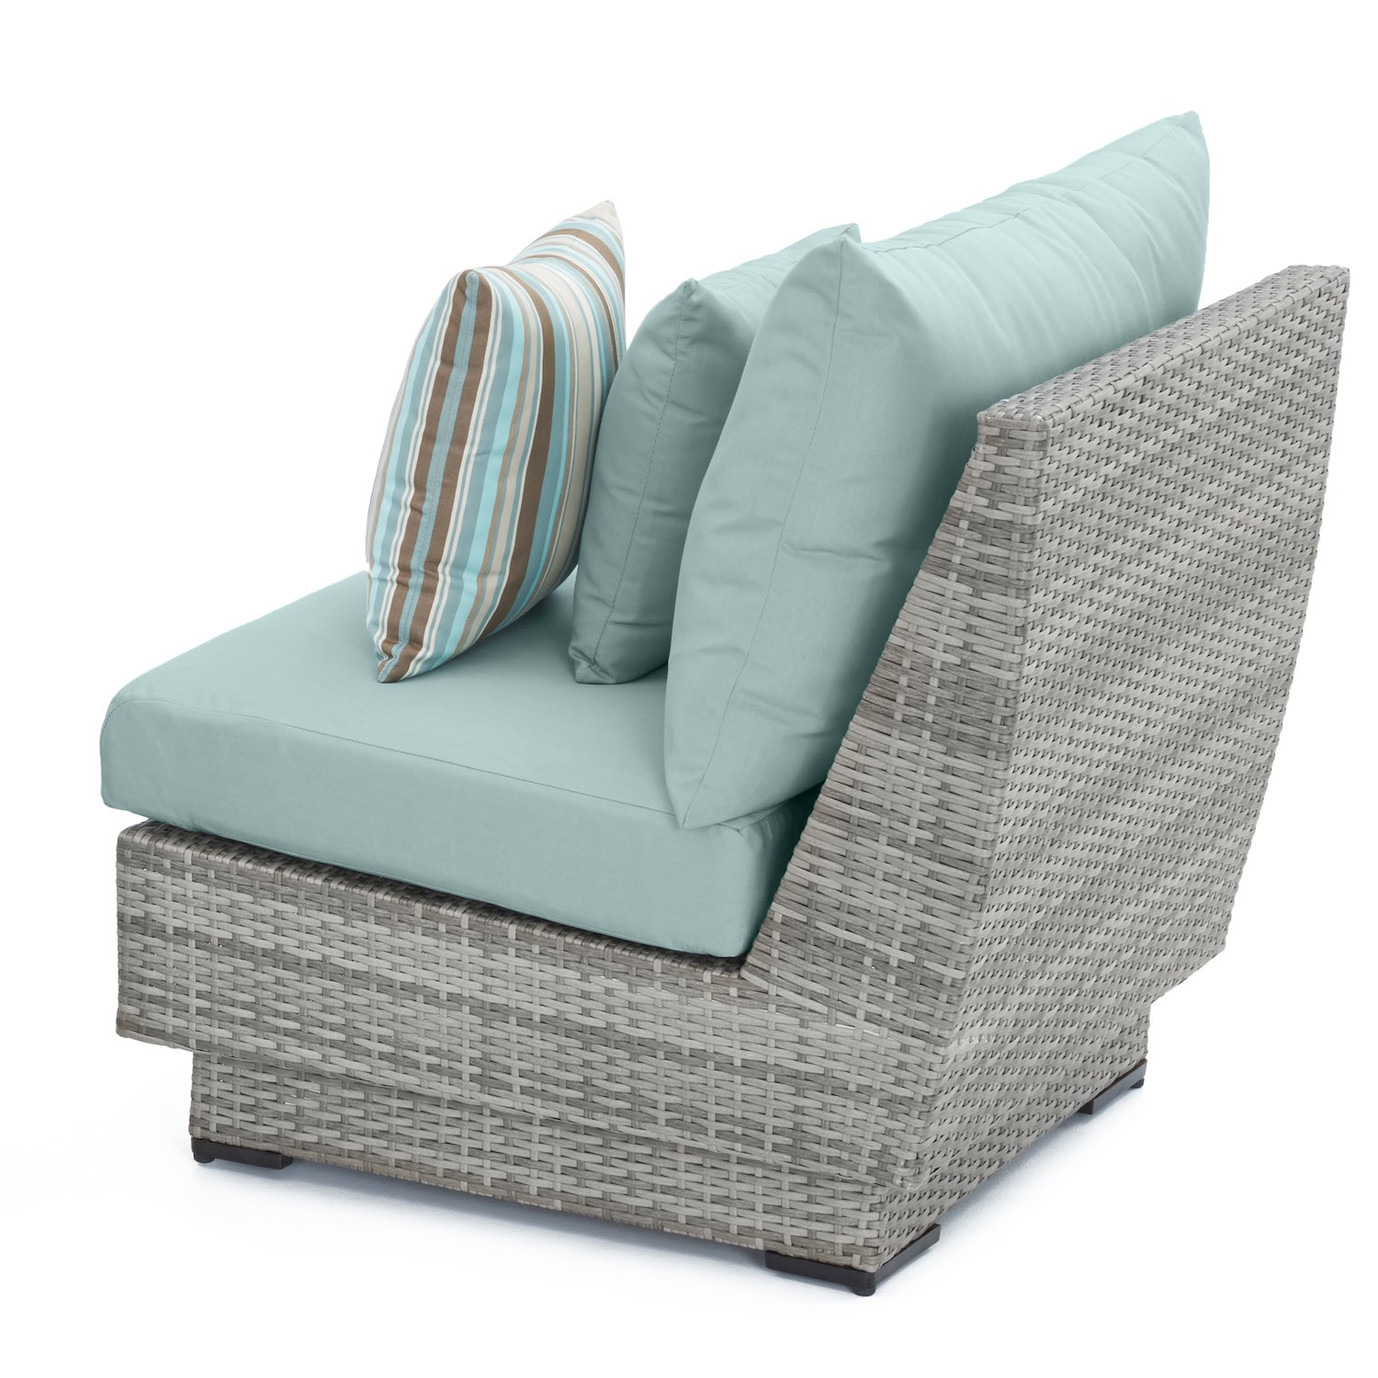 Cannes™ Armless Chairs - Bliss Blue